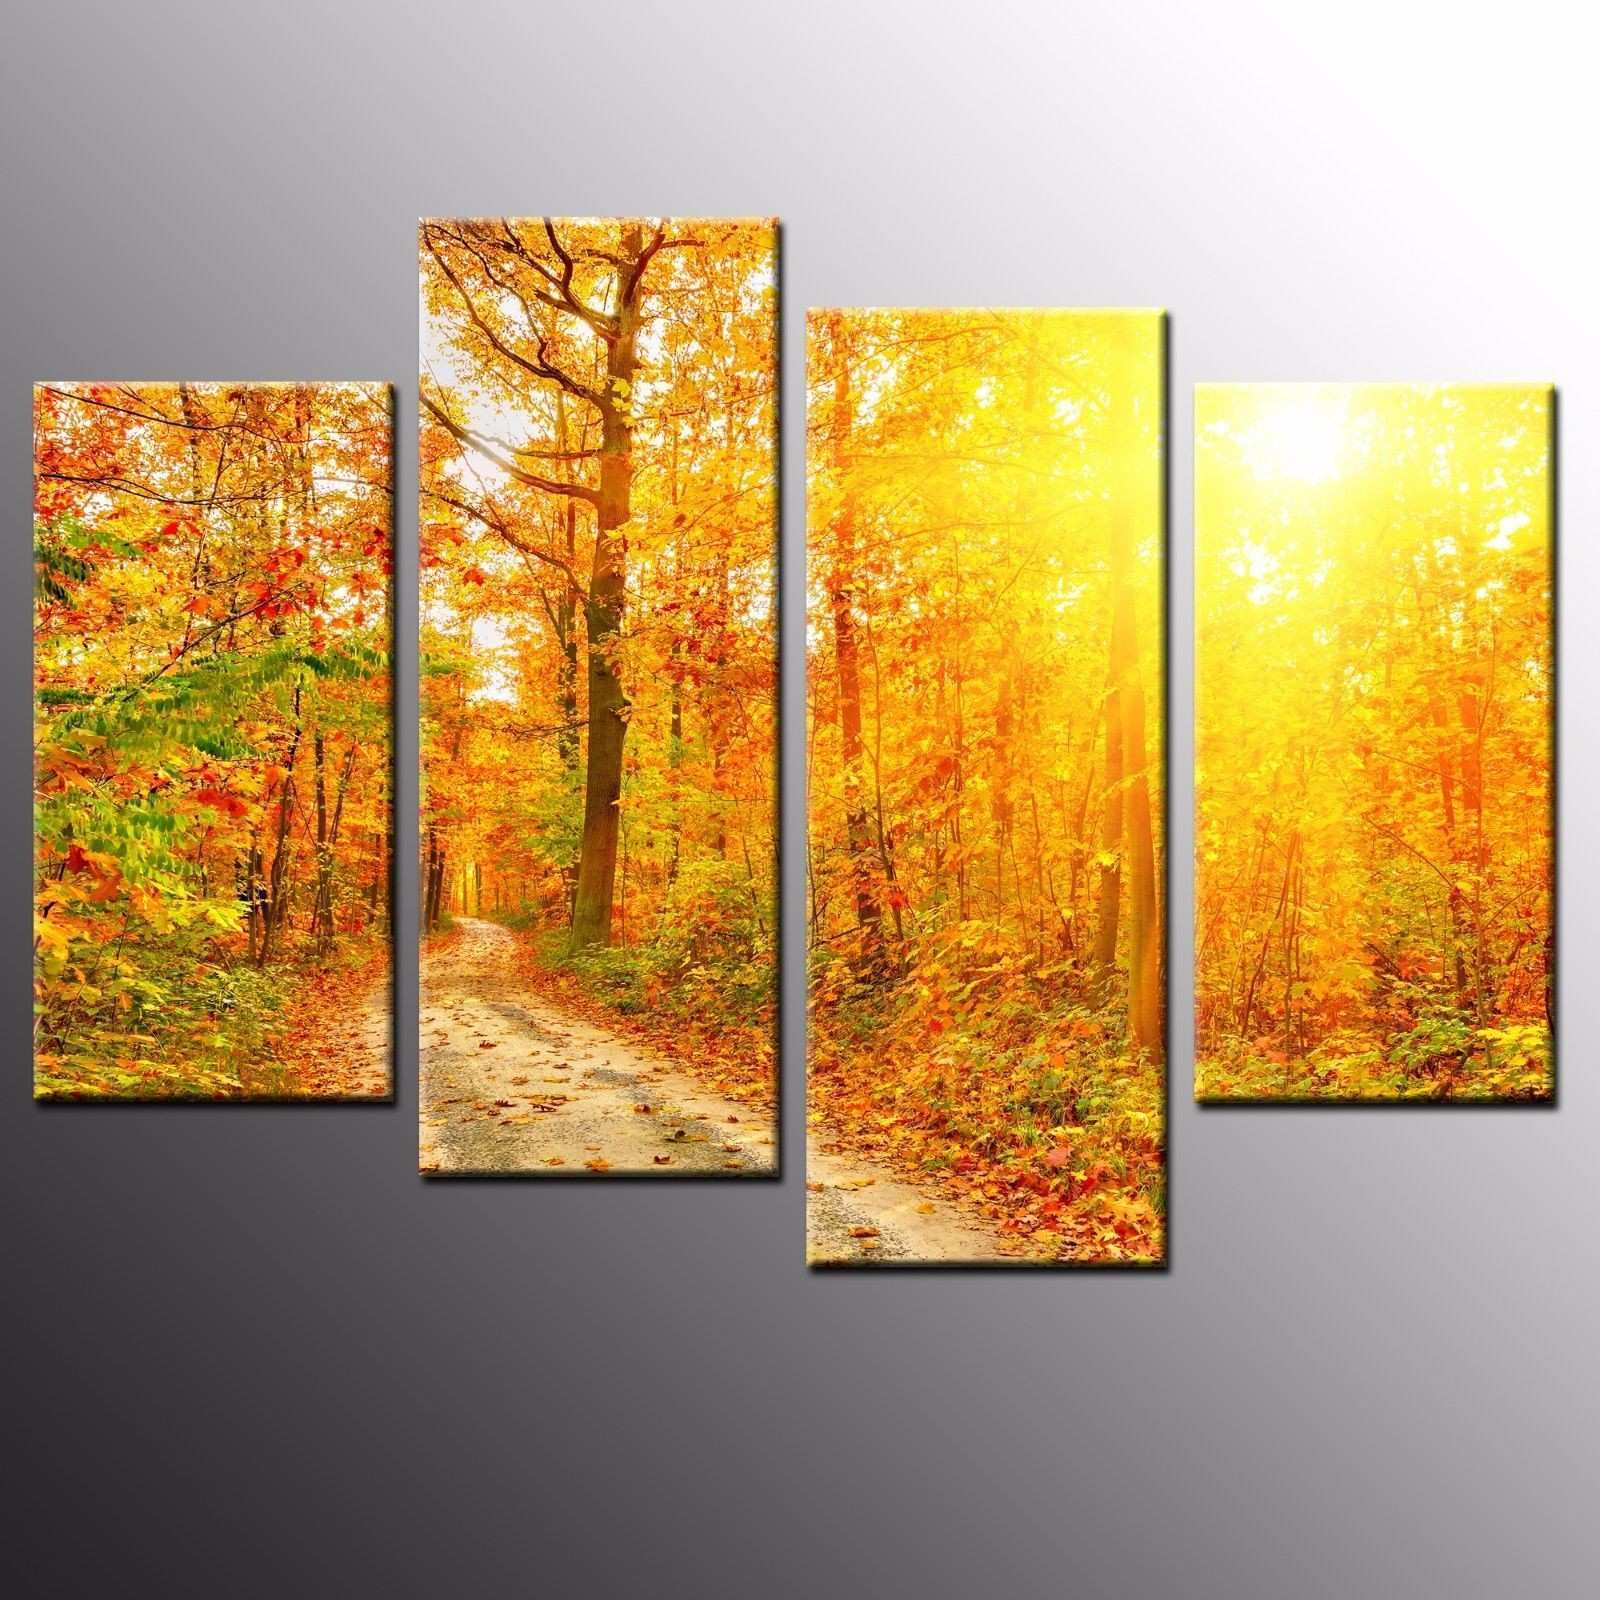 Wall Decor Paintings and Prints New Hd Canvas Prints Golden Trees ...